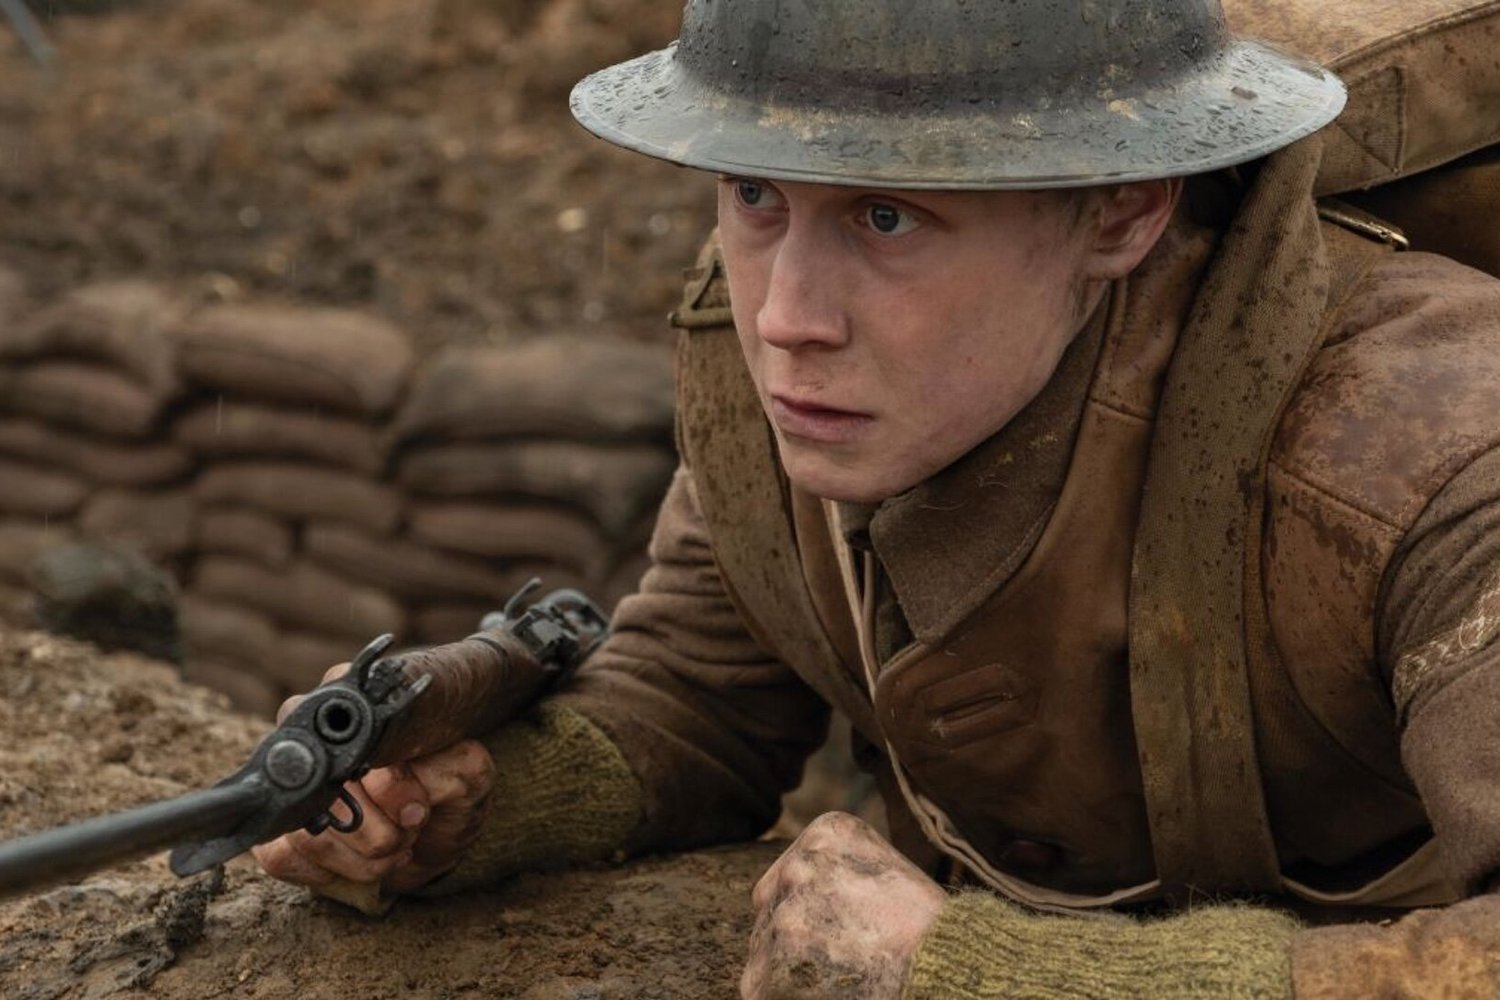 '1917' Takes Audience on Front Lines of Epic War Saga